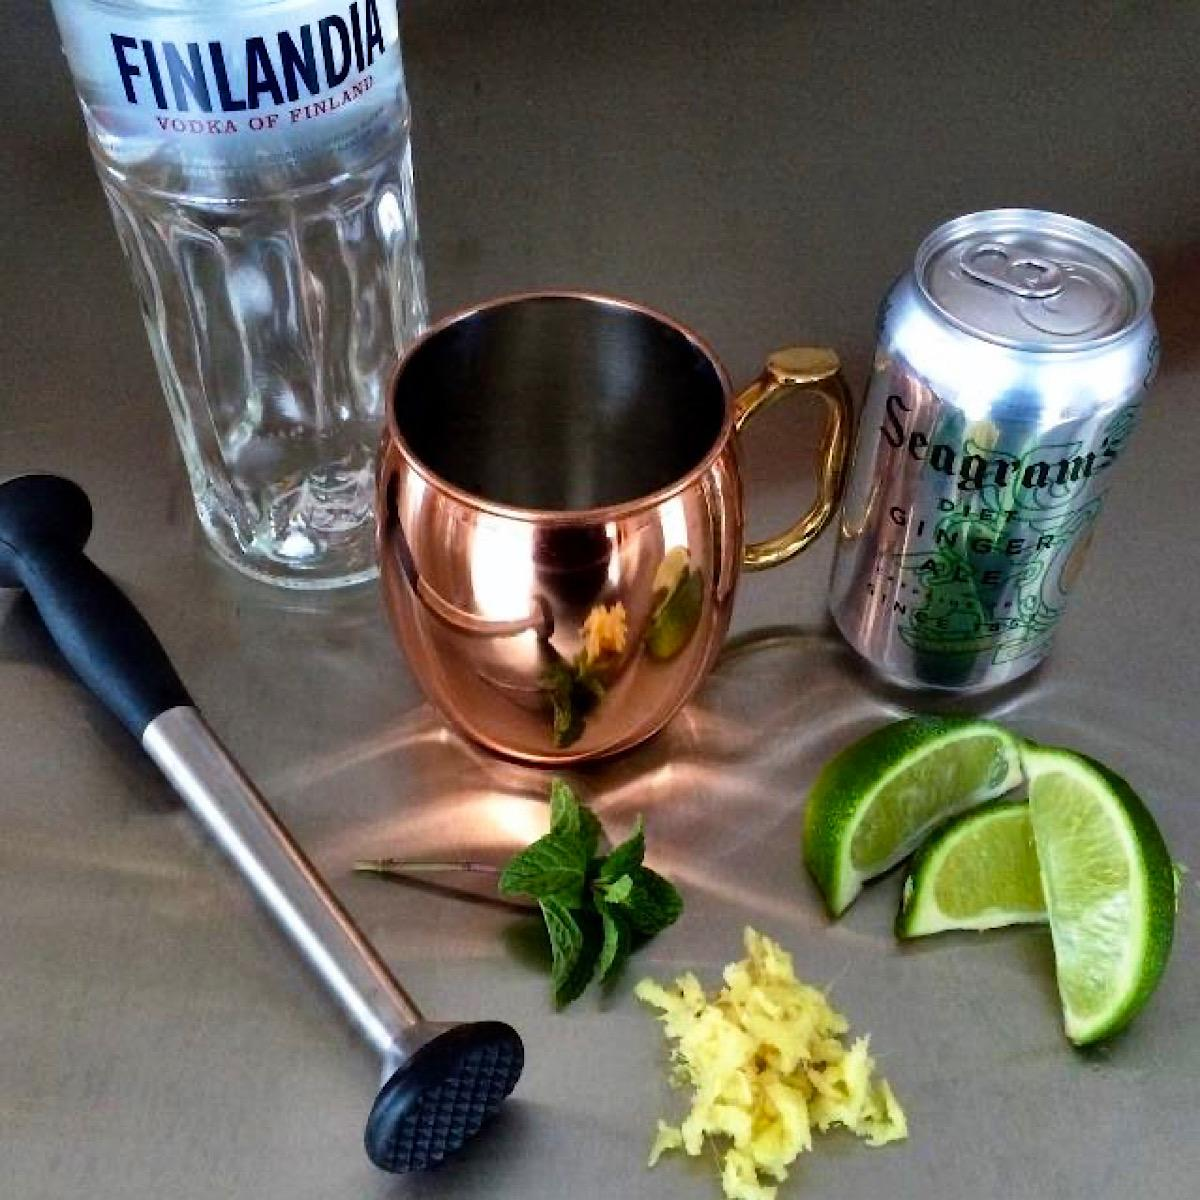 Ingredients for a Skinny Moscow Mule